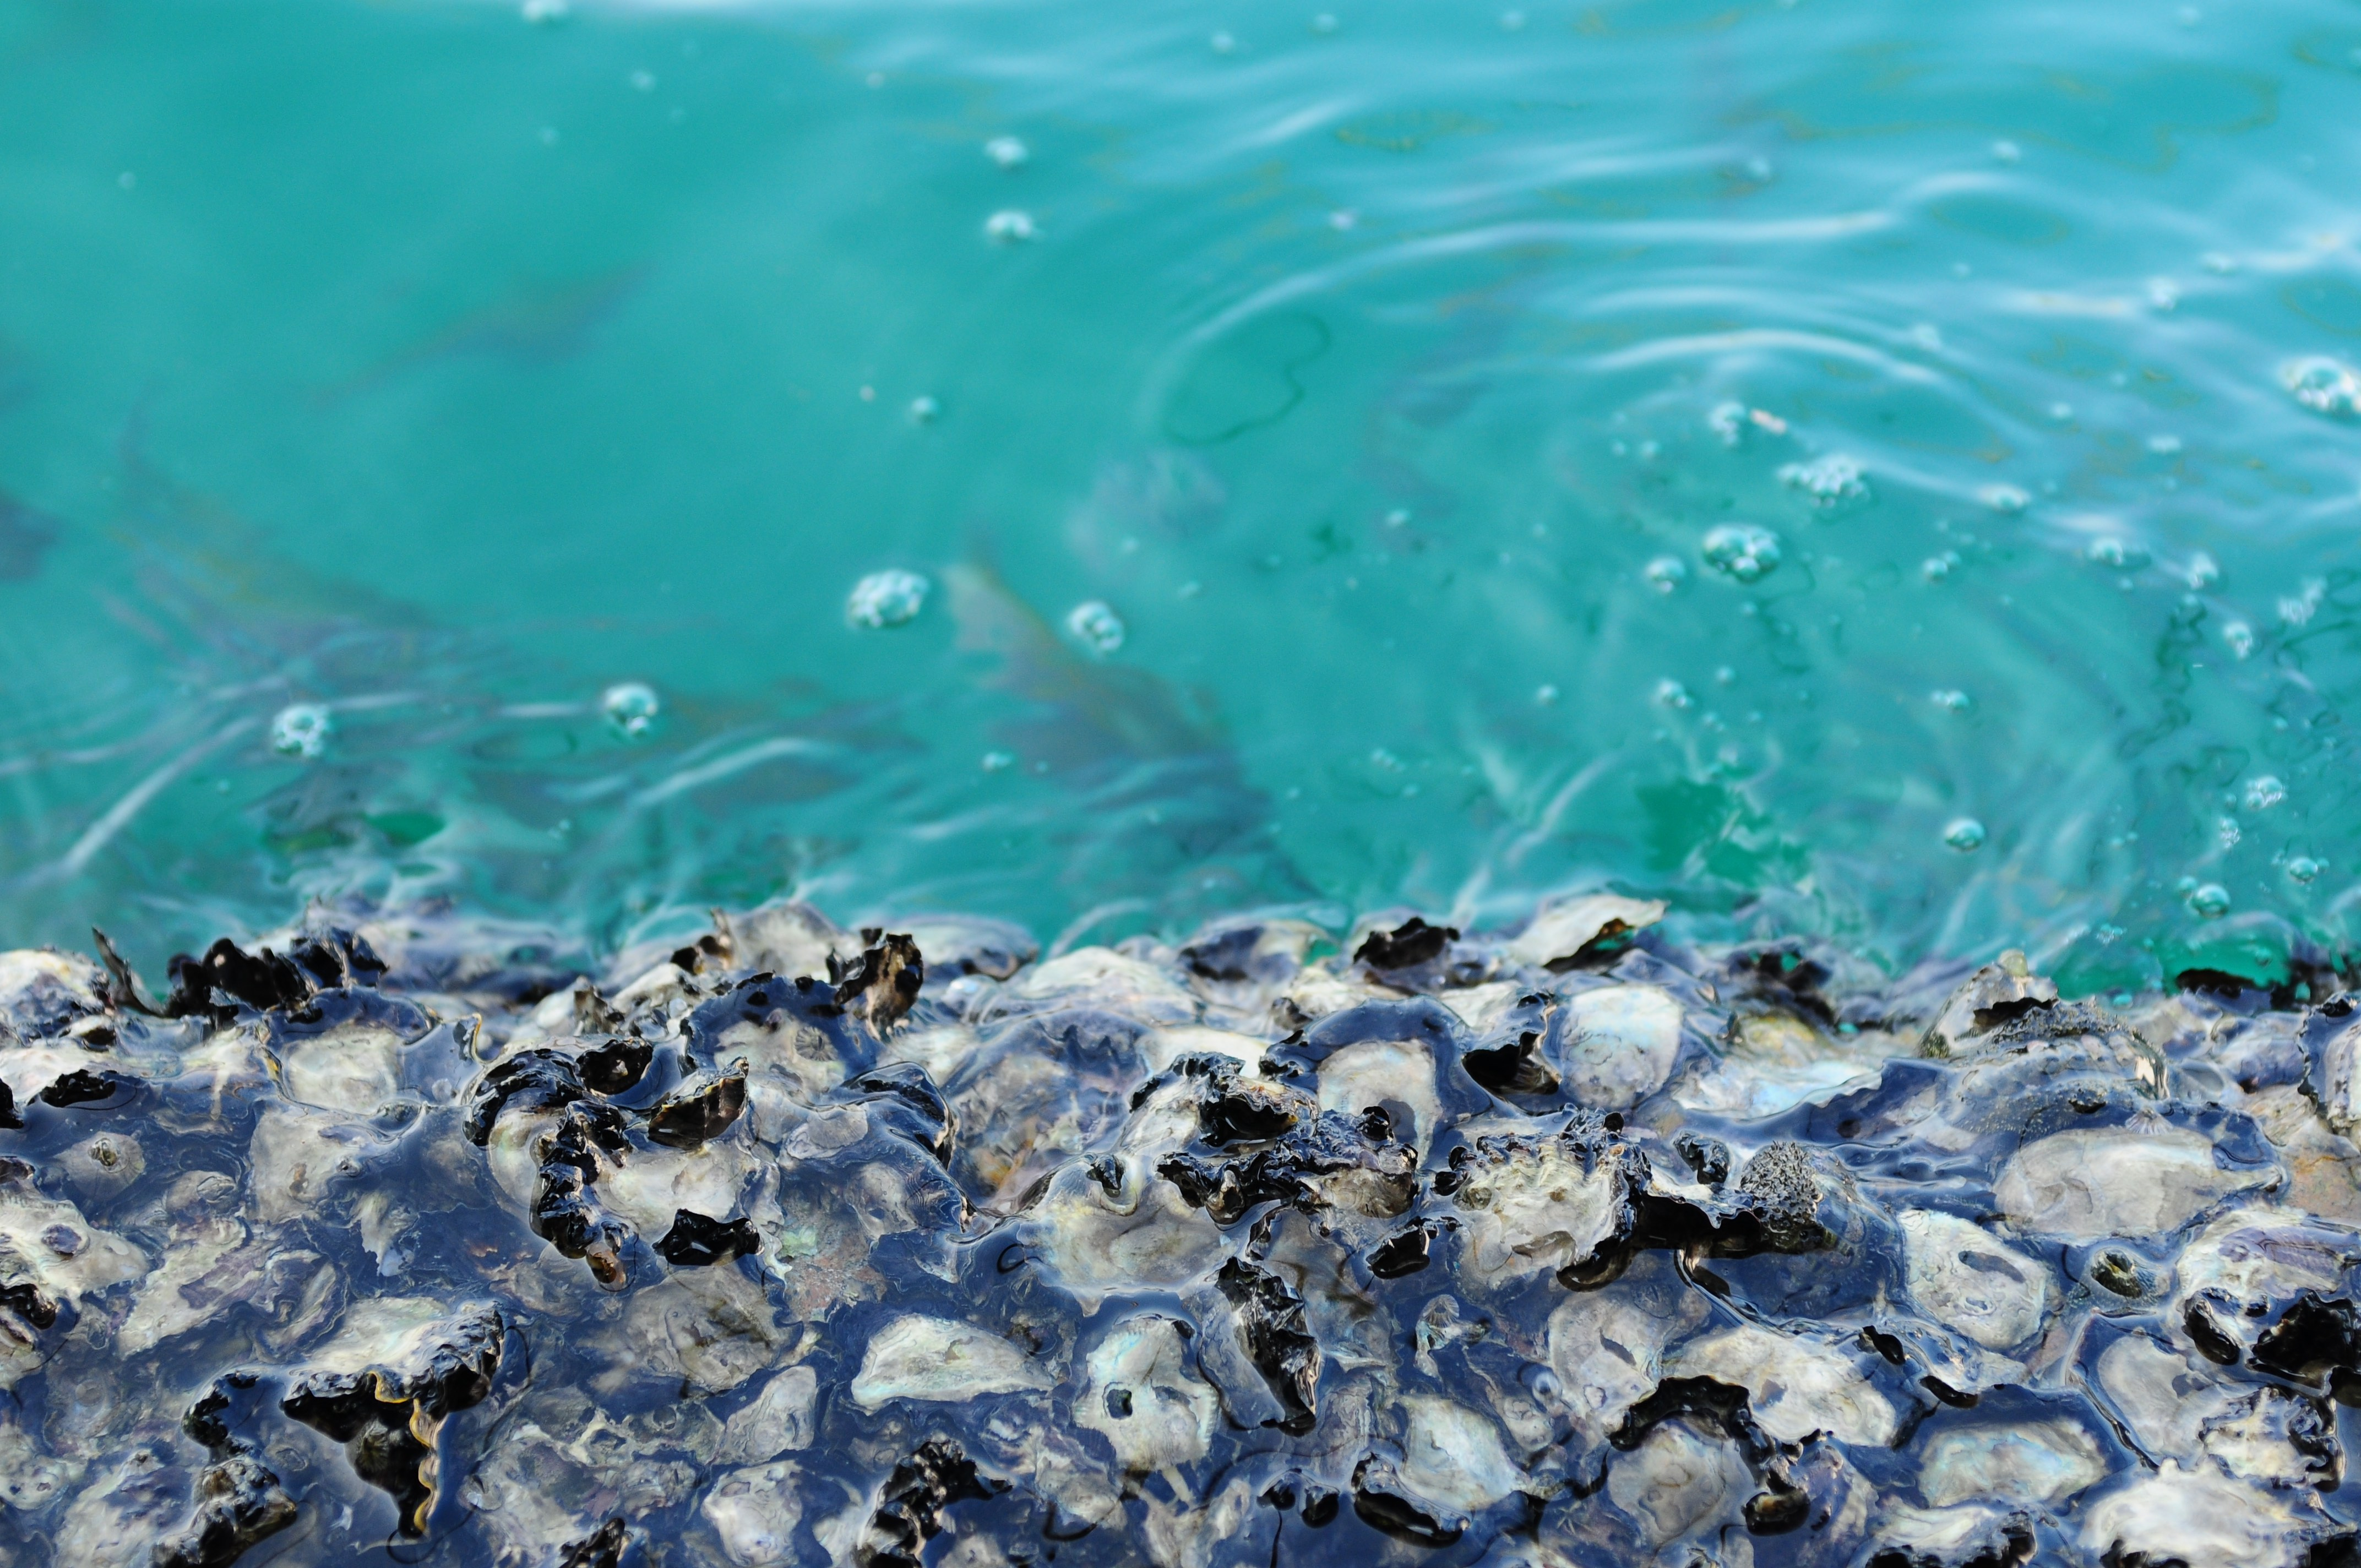 Oyster shells in the ocean